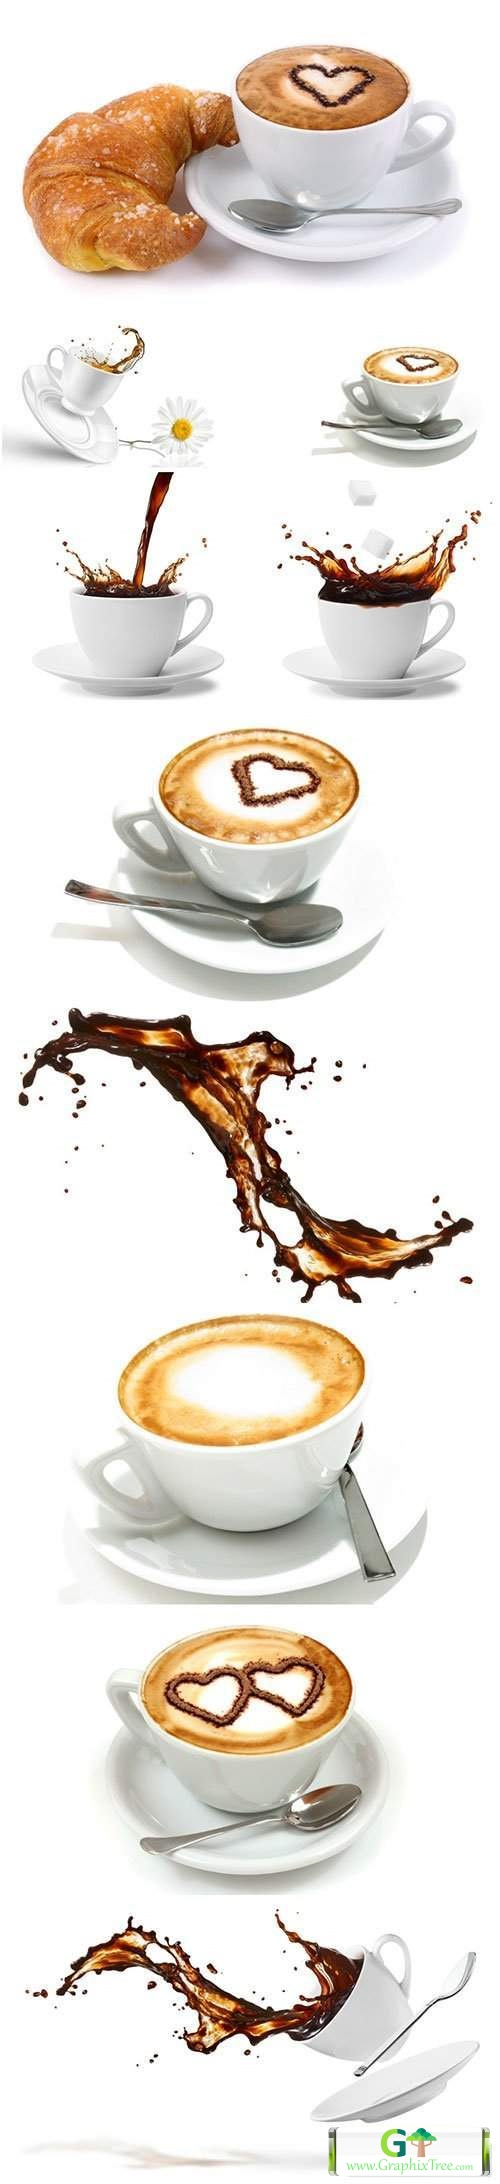 Coffee in white cups, coffee splashes